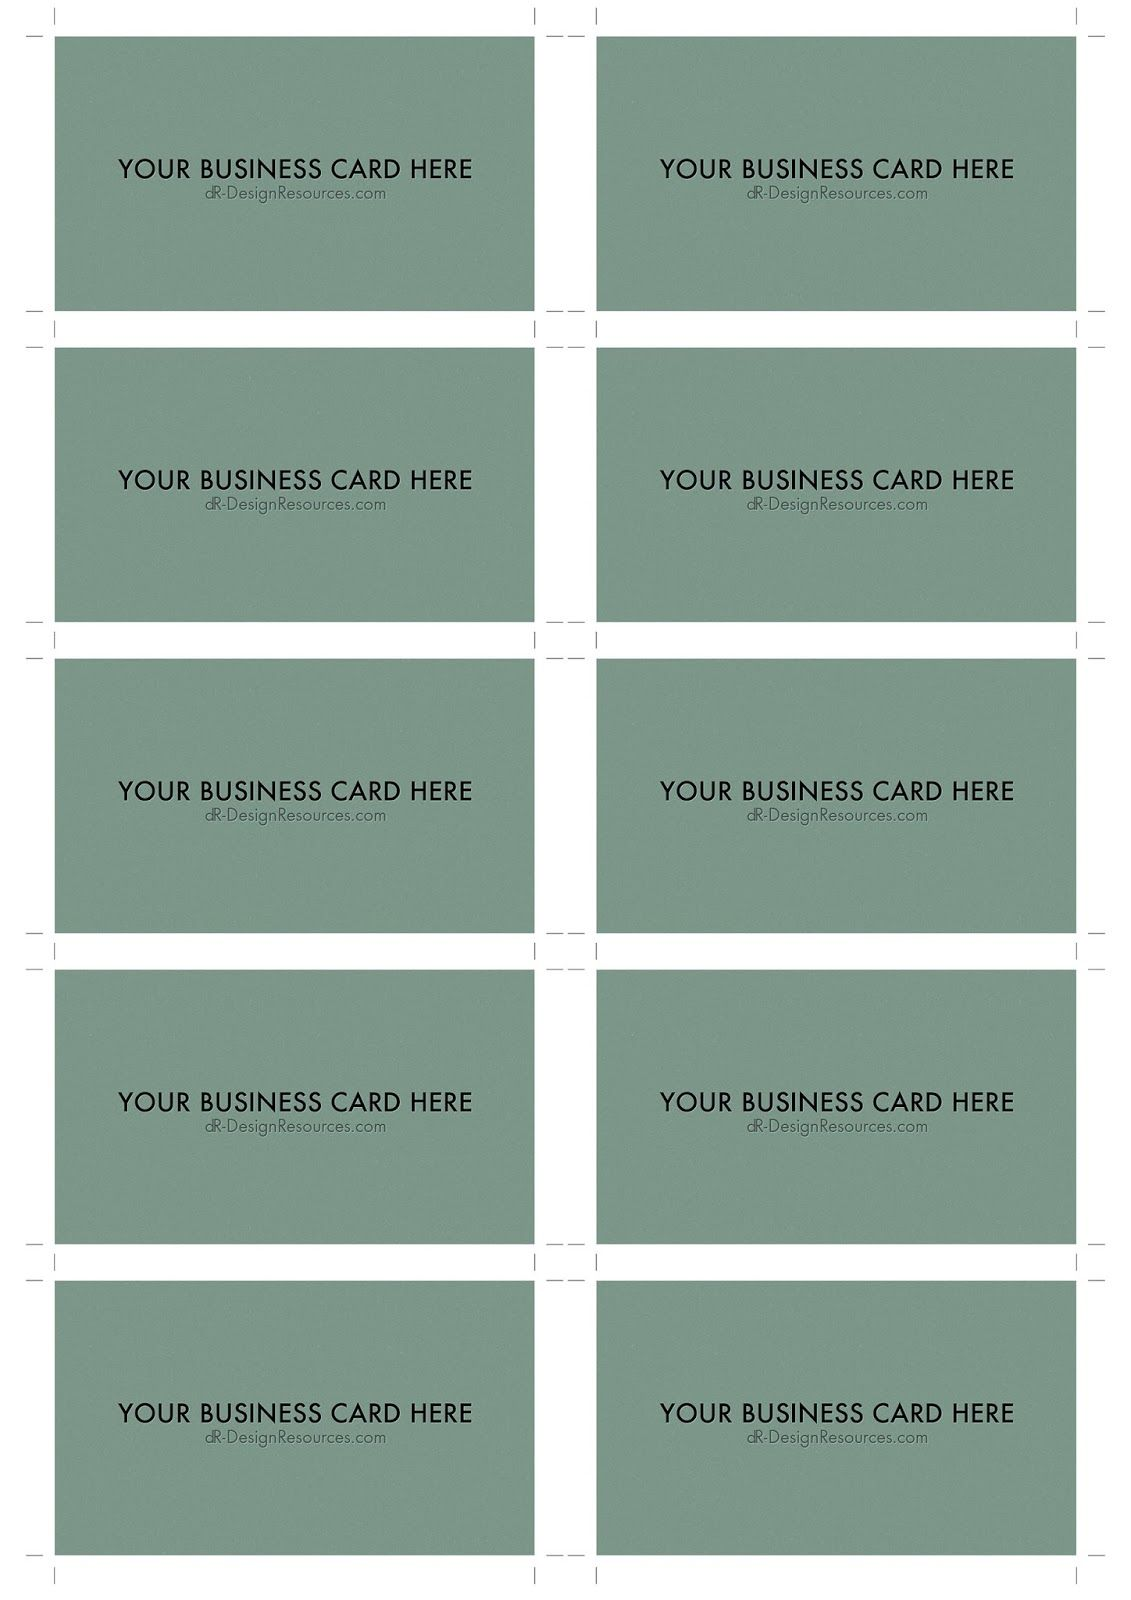 A4 business card template psd 10 per sheet business cards a4 business card template psd 10 per sheet friedricerecipe Gallery